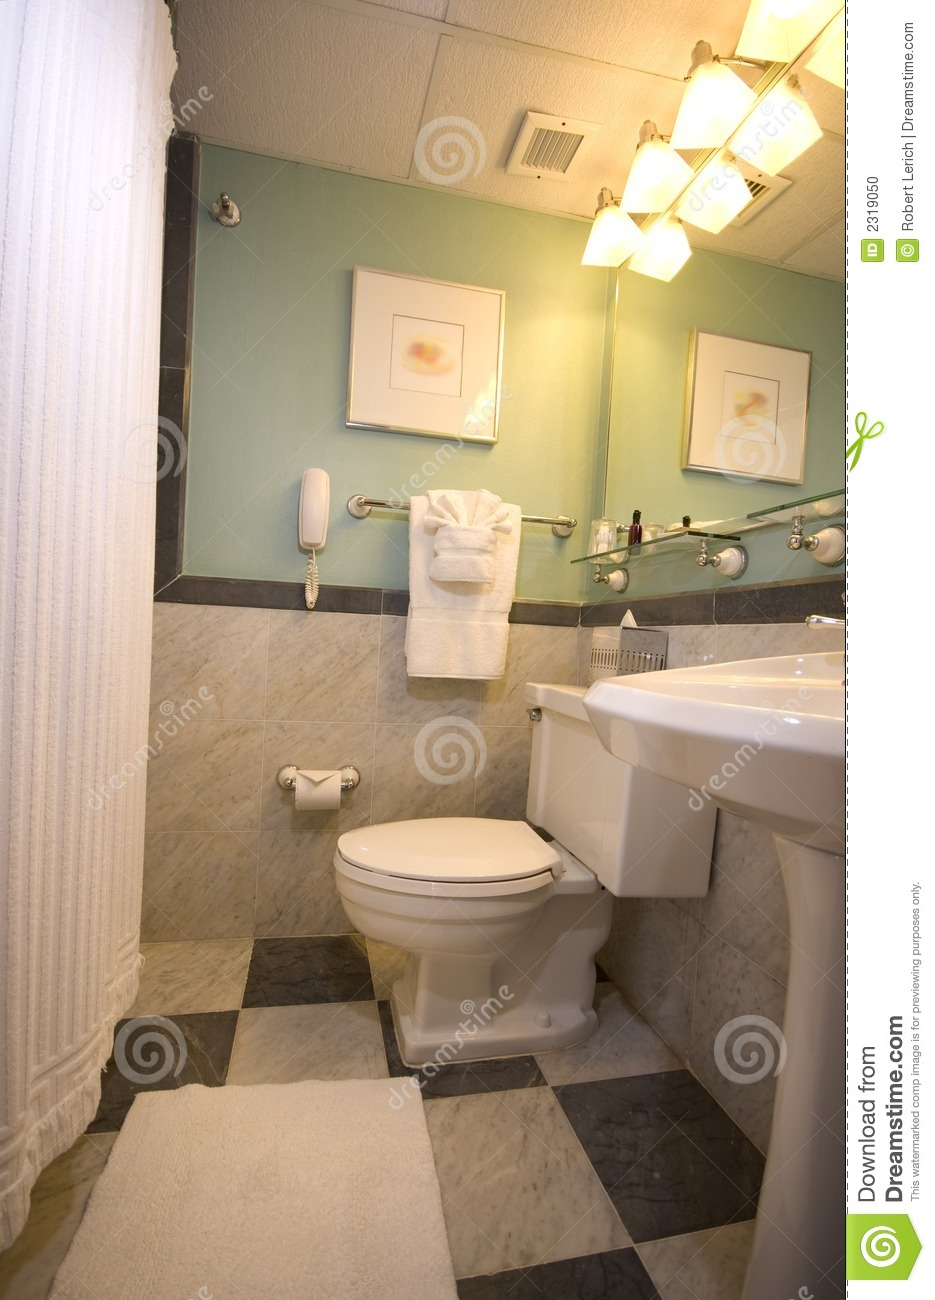 Luxury hotel bathroom stock photo image of mirror for Y hotel shared bathroom